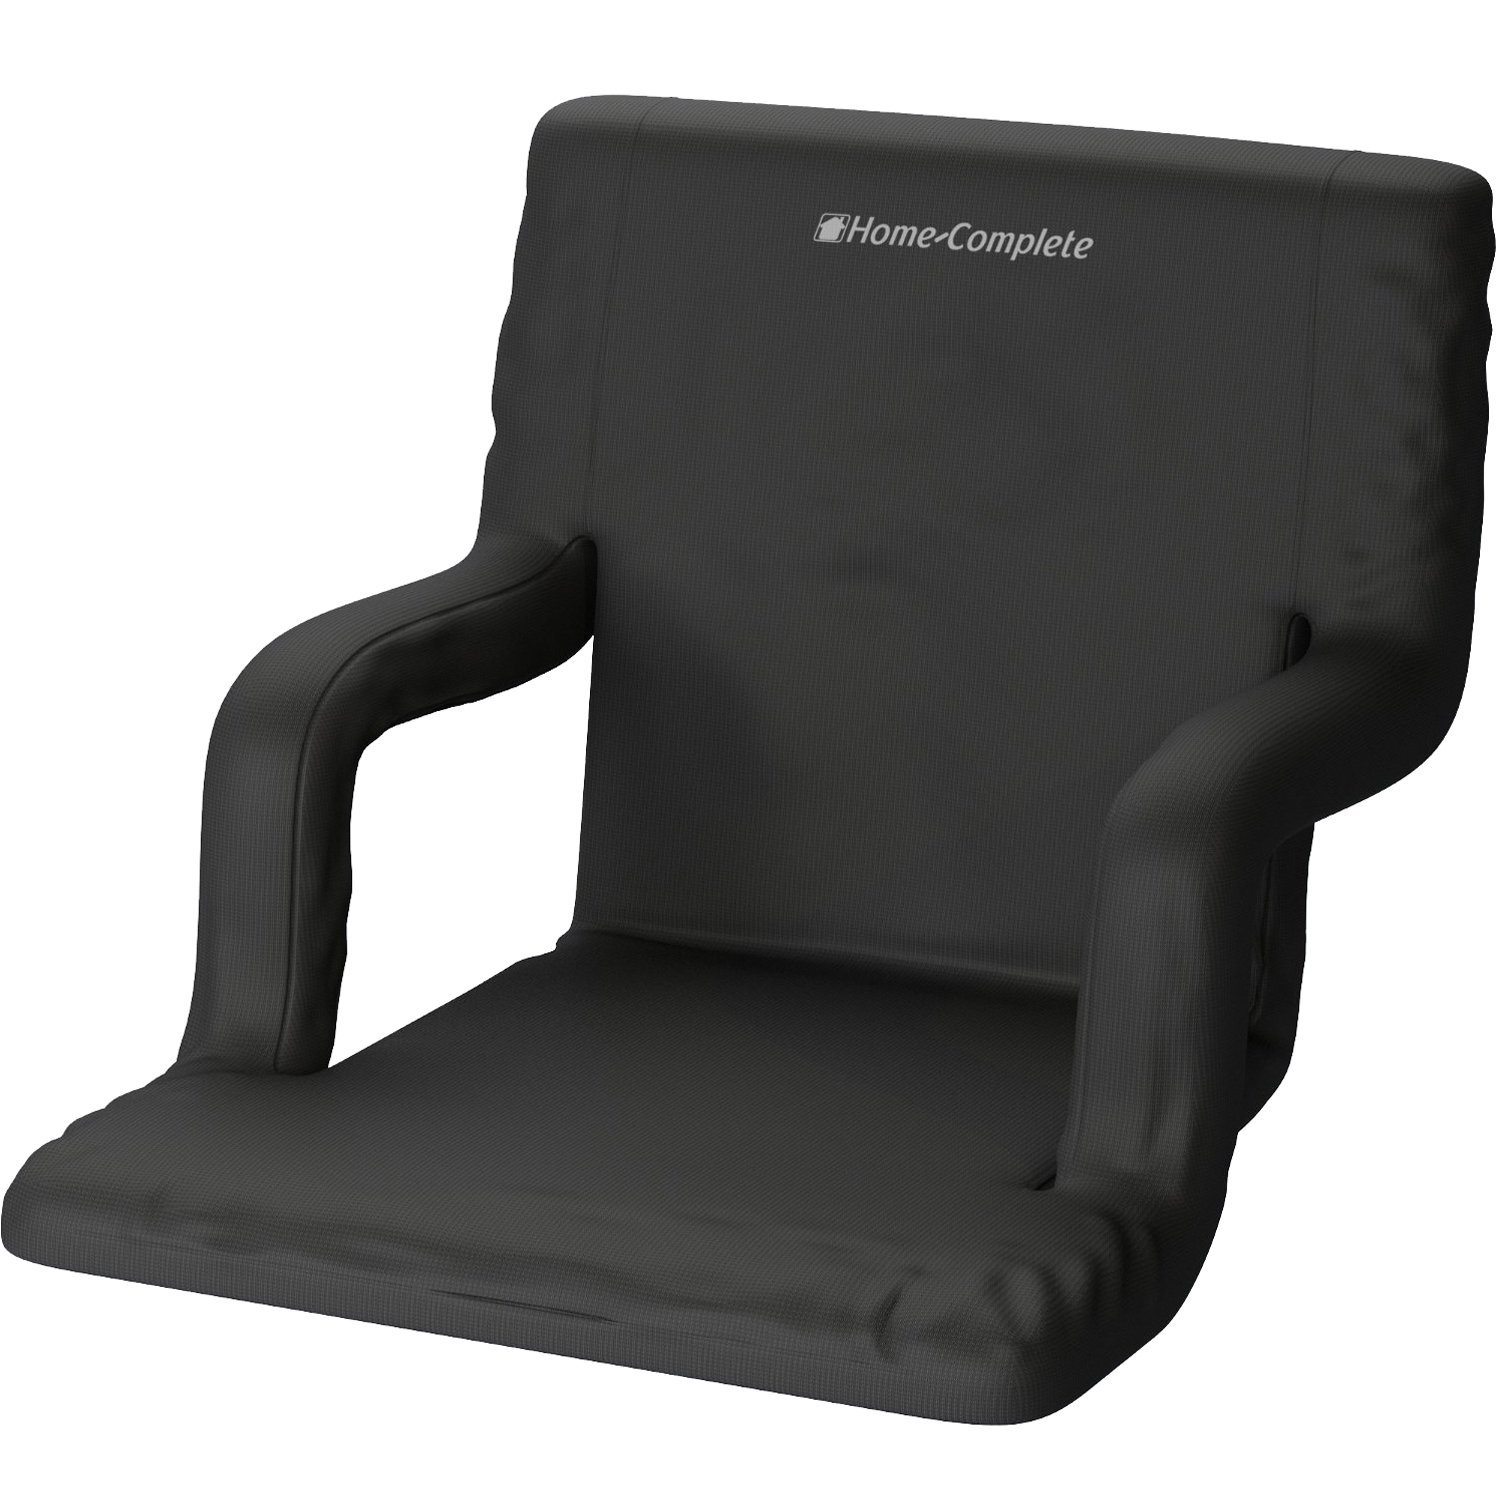 Amazon Wide Stadium Seats Chairs for Bleachers or Benches